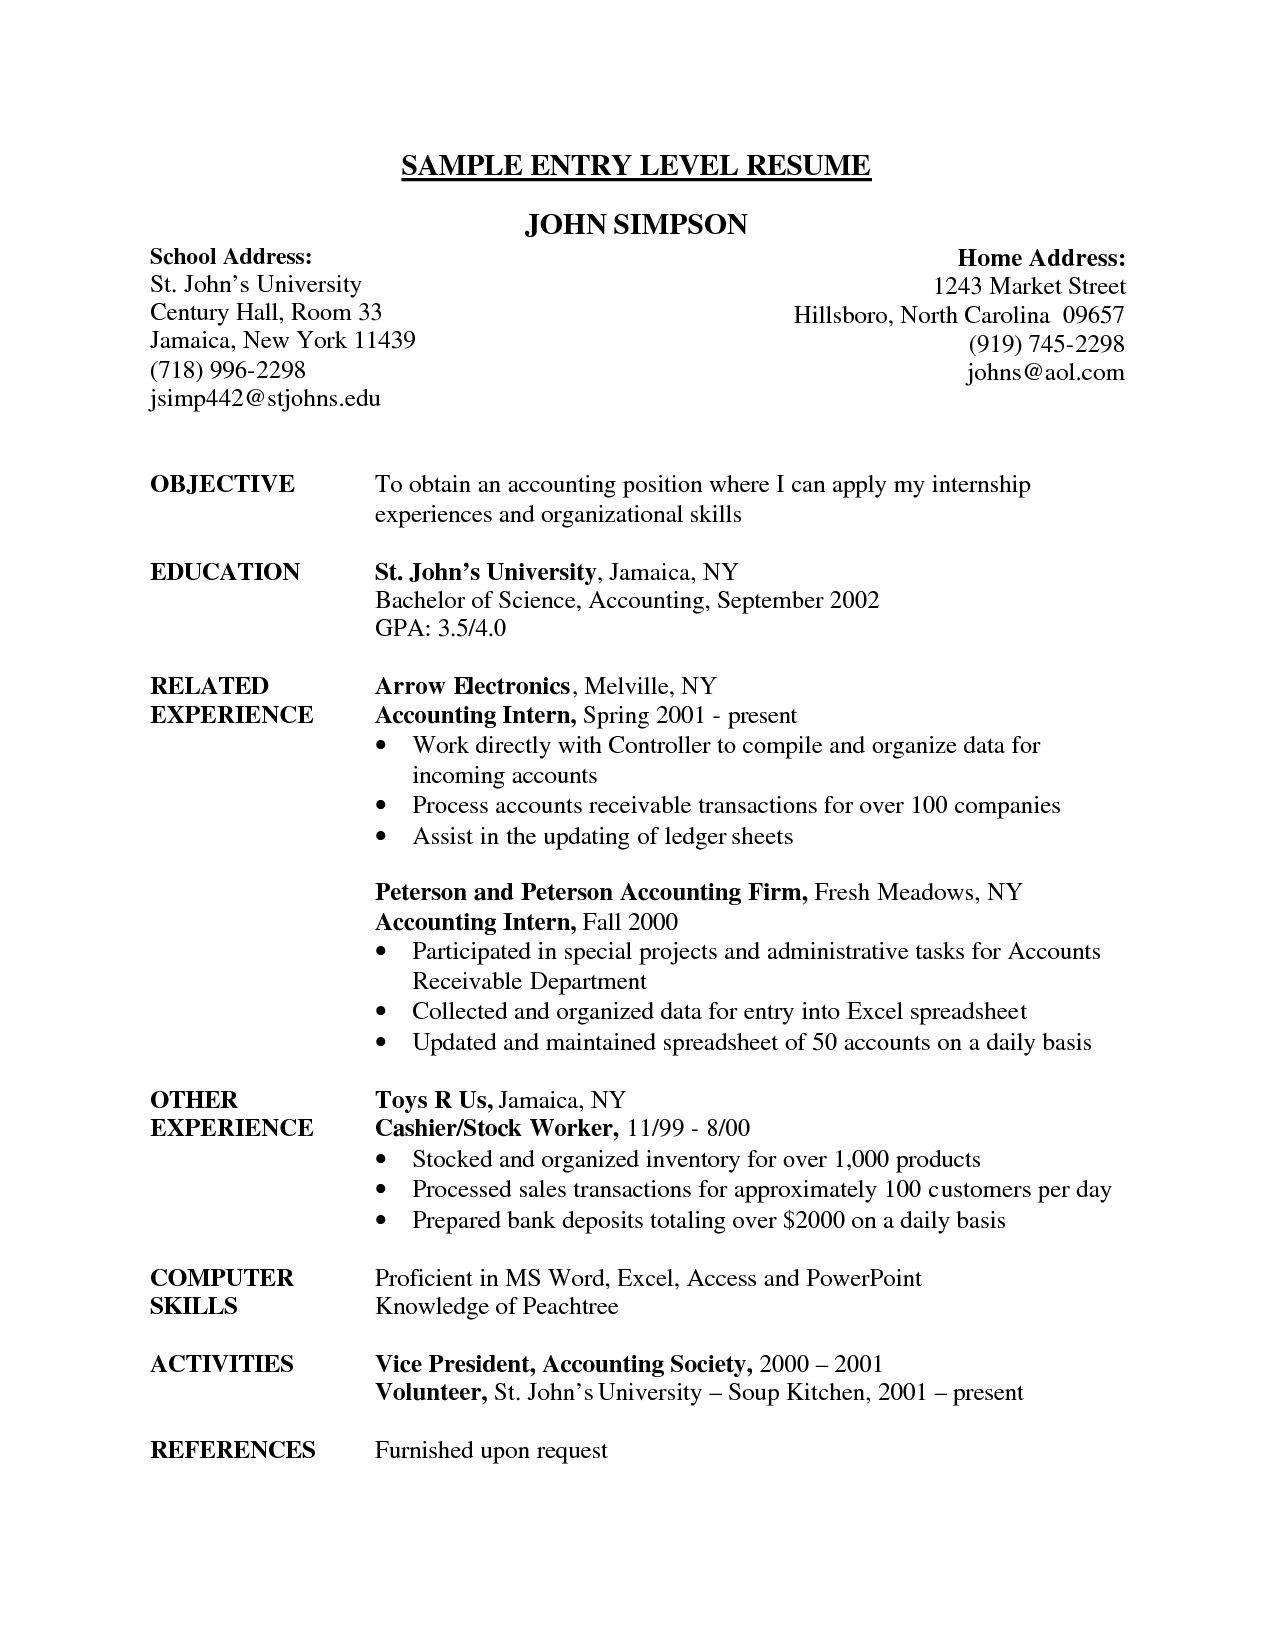 Career Objective On Resume Template Entry Level Resume Example Entry Level Job Resume Examples